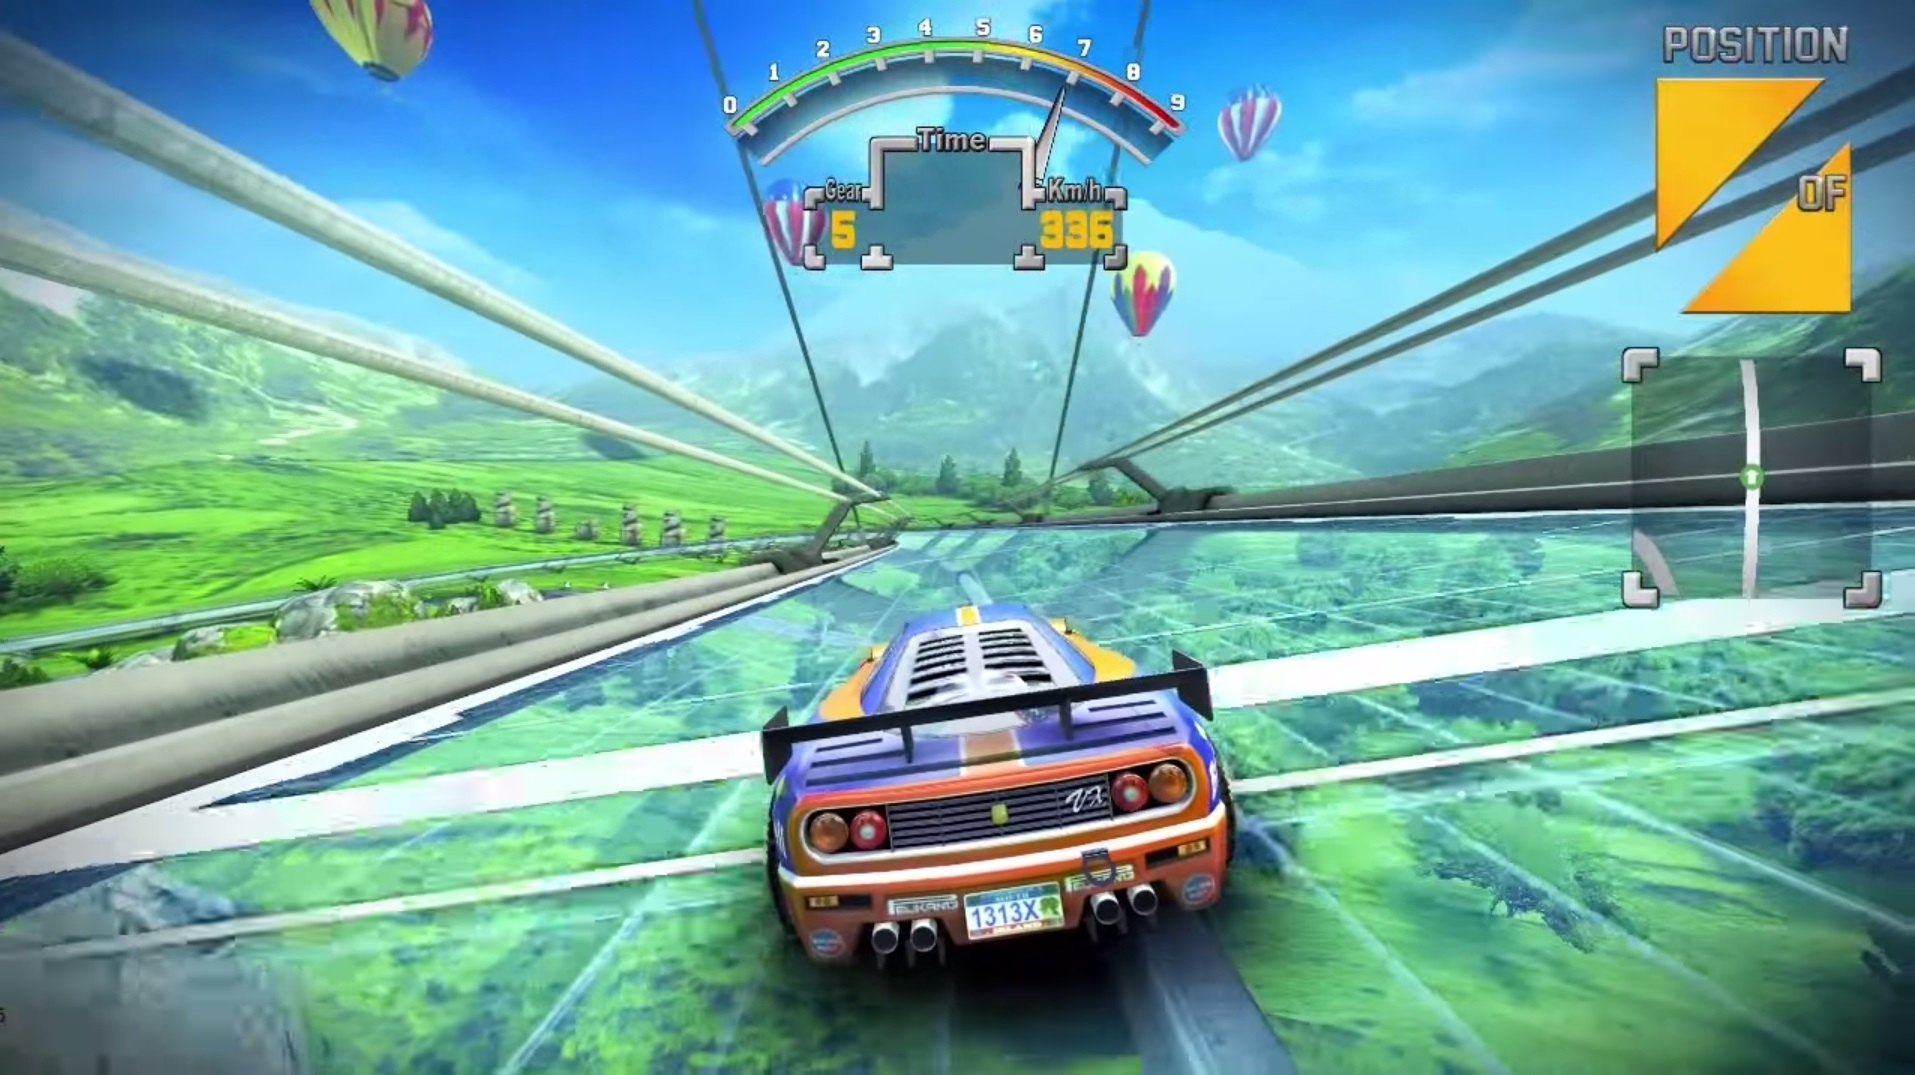 The 90's Arcade Racer lives on in glorious 60fps Wii U gameplay footage